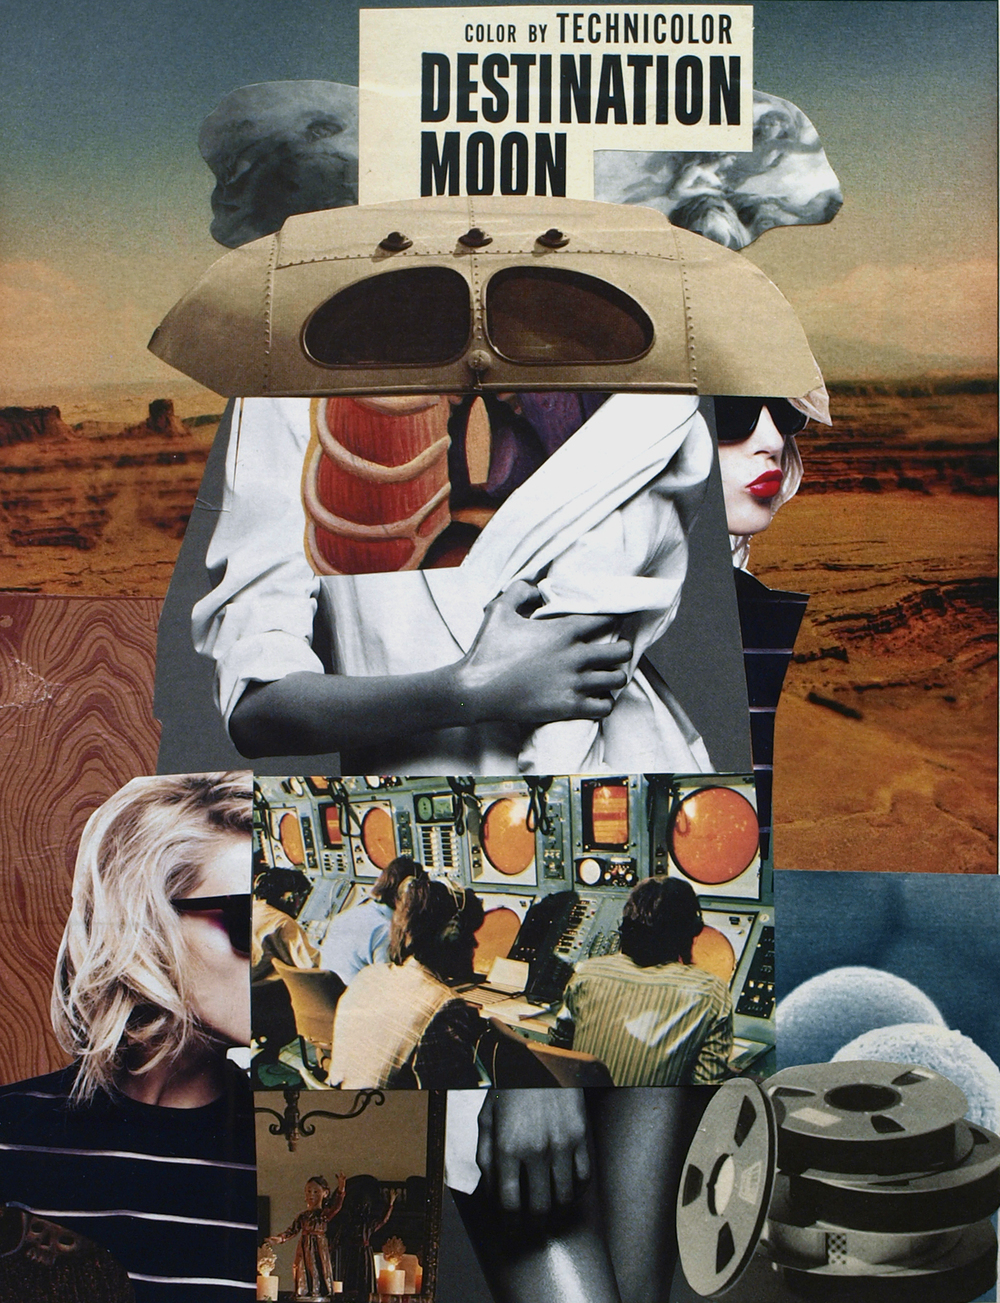 Destination Moon.jpg